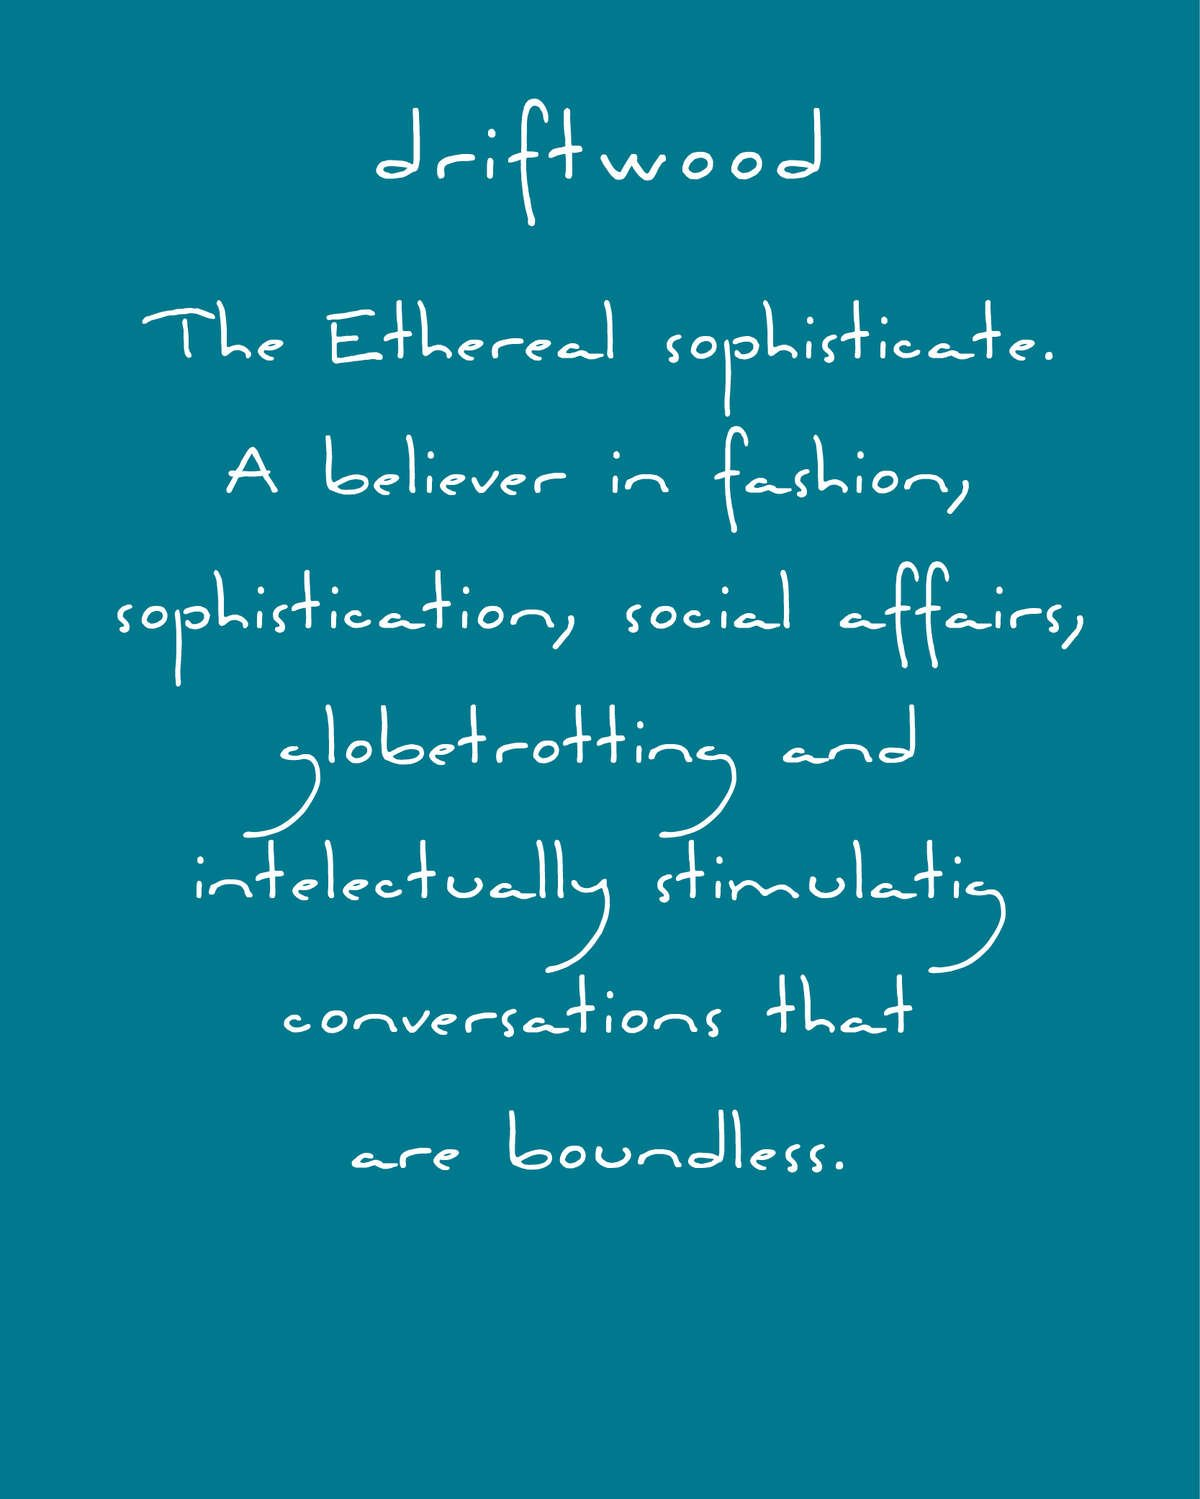 Driftwood fragrance scent persona the ethereal sophisticate.